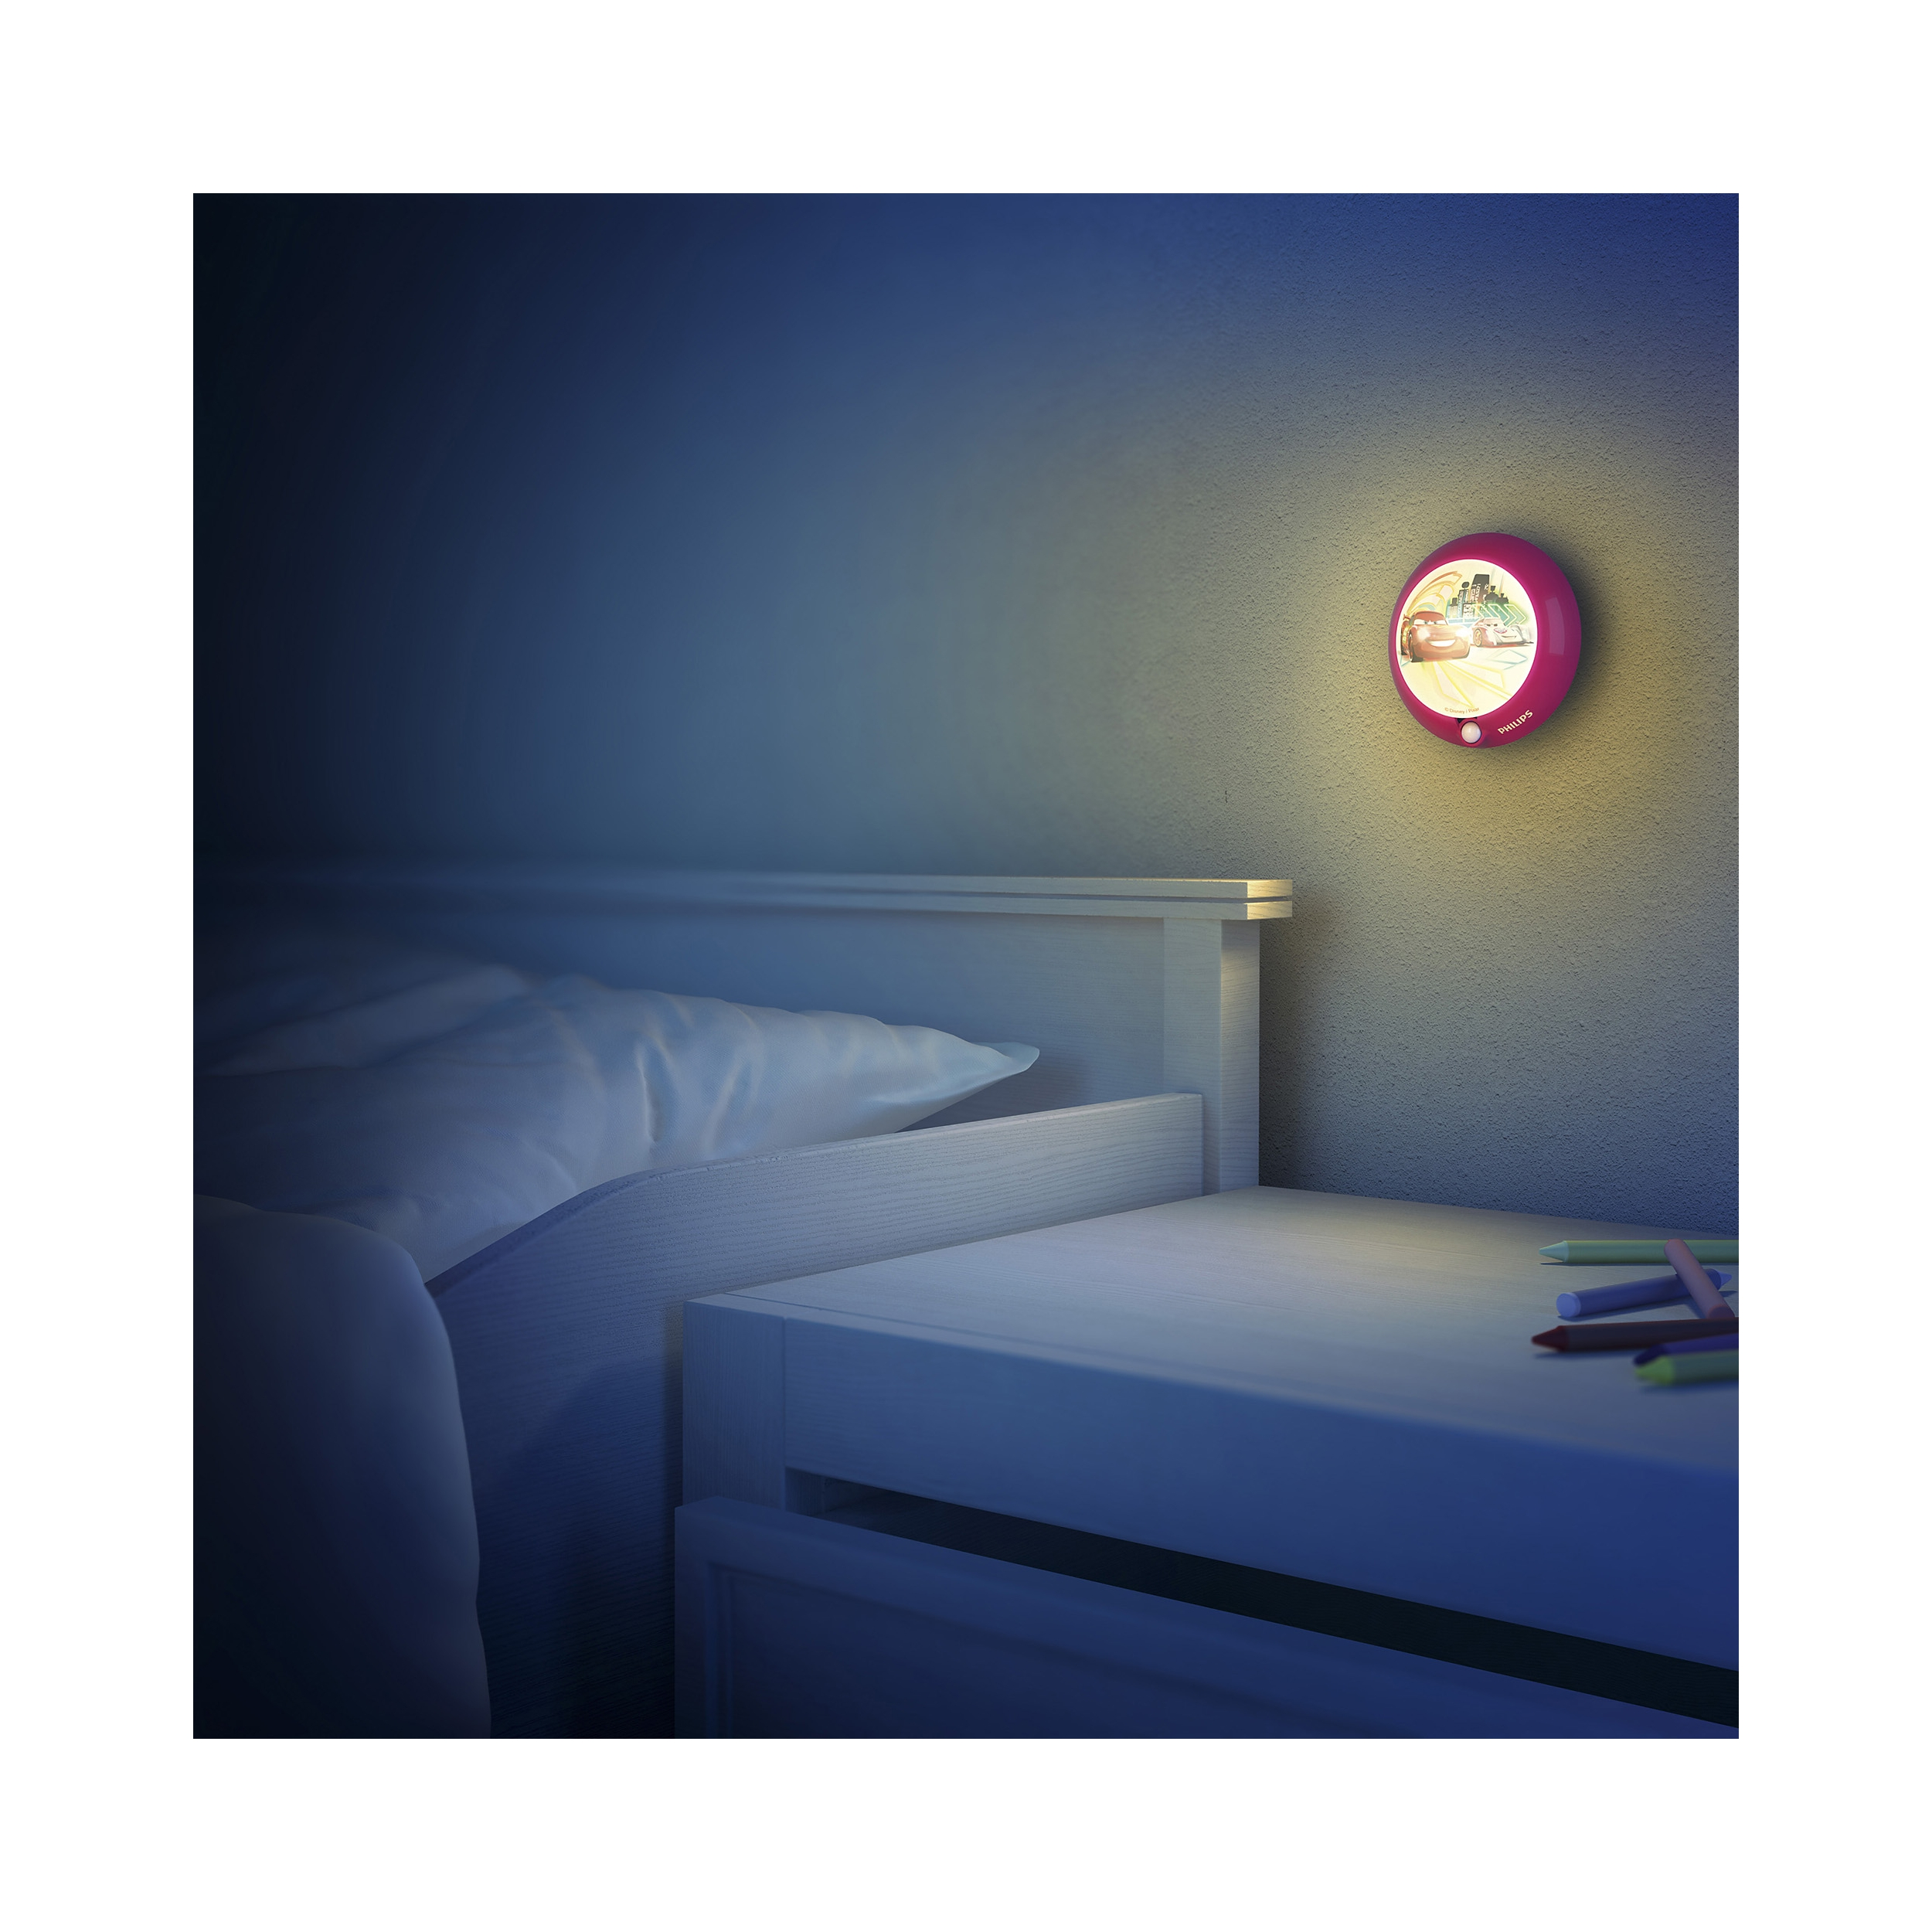 philips led lampe kinderzimmer disney nachtlicht cars licht 717653216 ebay. Black Bedroom Furniture Sets. Home Design Ideas